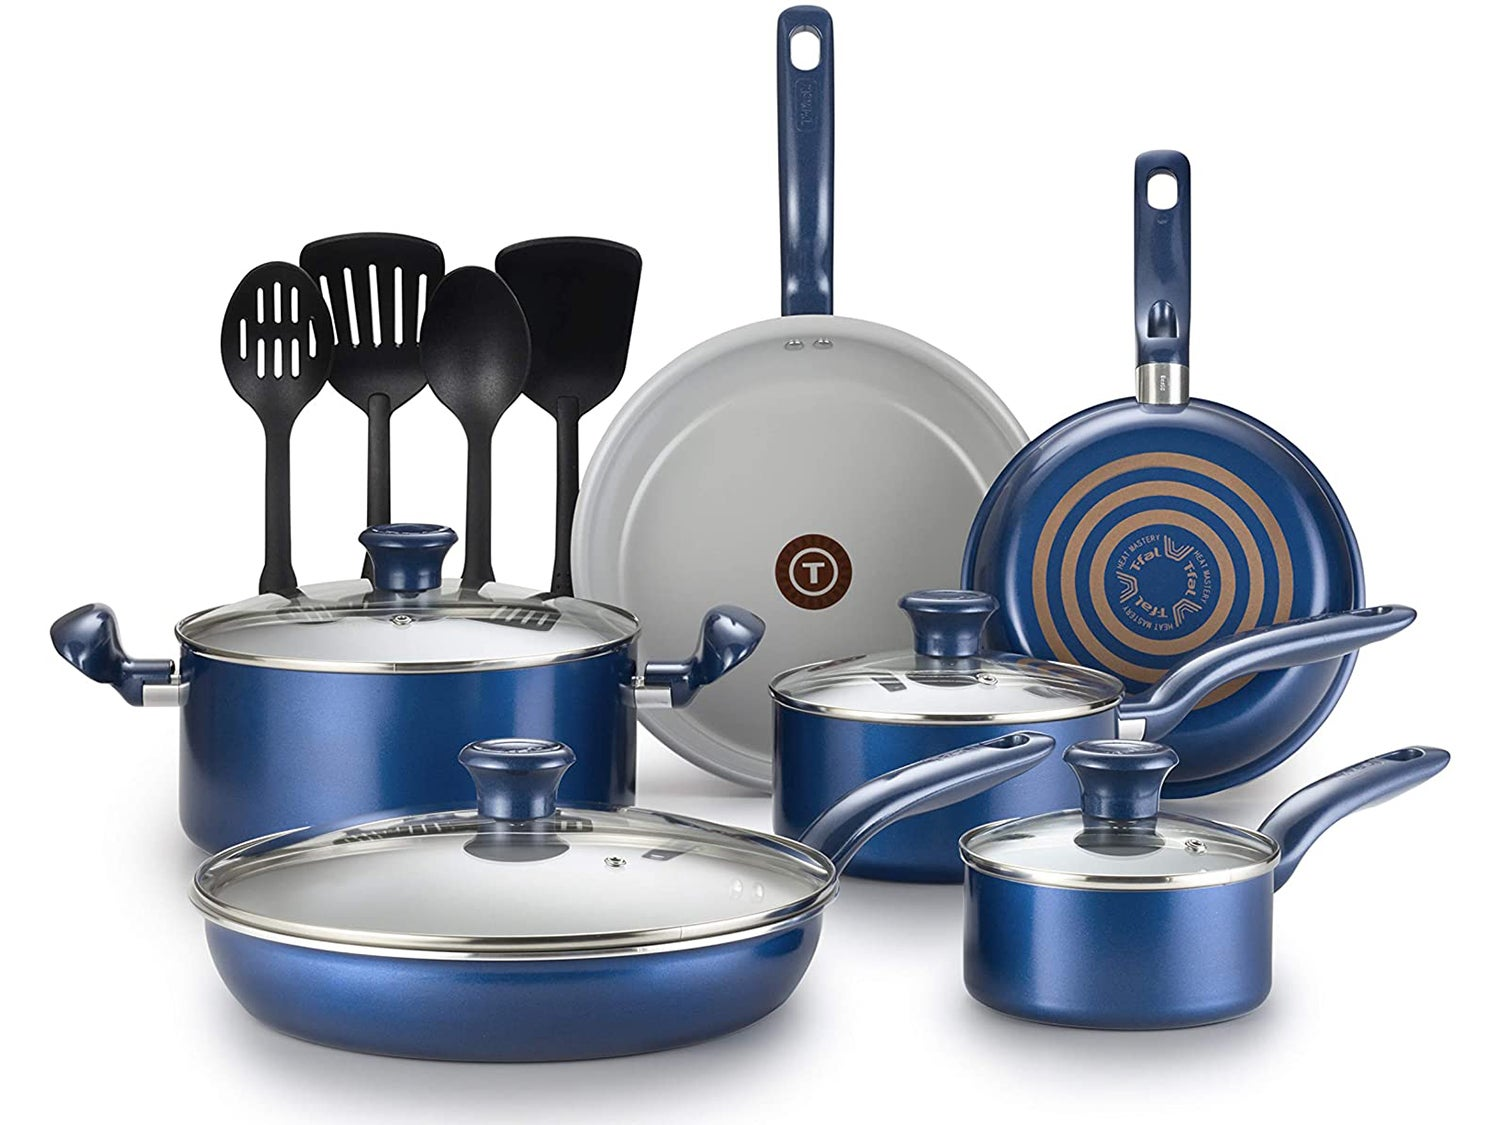 T-fal G918SE64 Inititives Initiatives Ceramic Thermo-Spot Heat Indicator Dishwasher Oven Safe Toxic Free Cookware Set